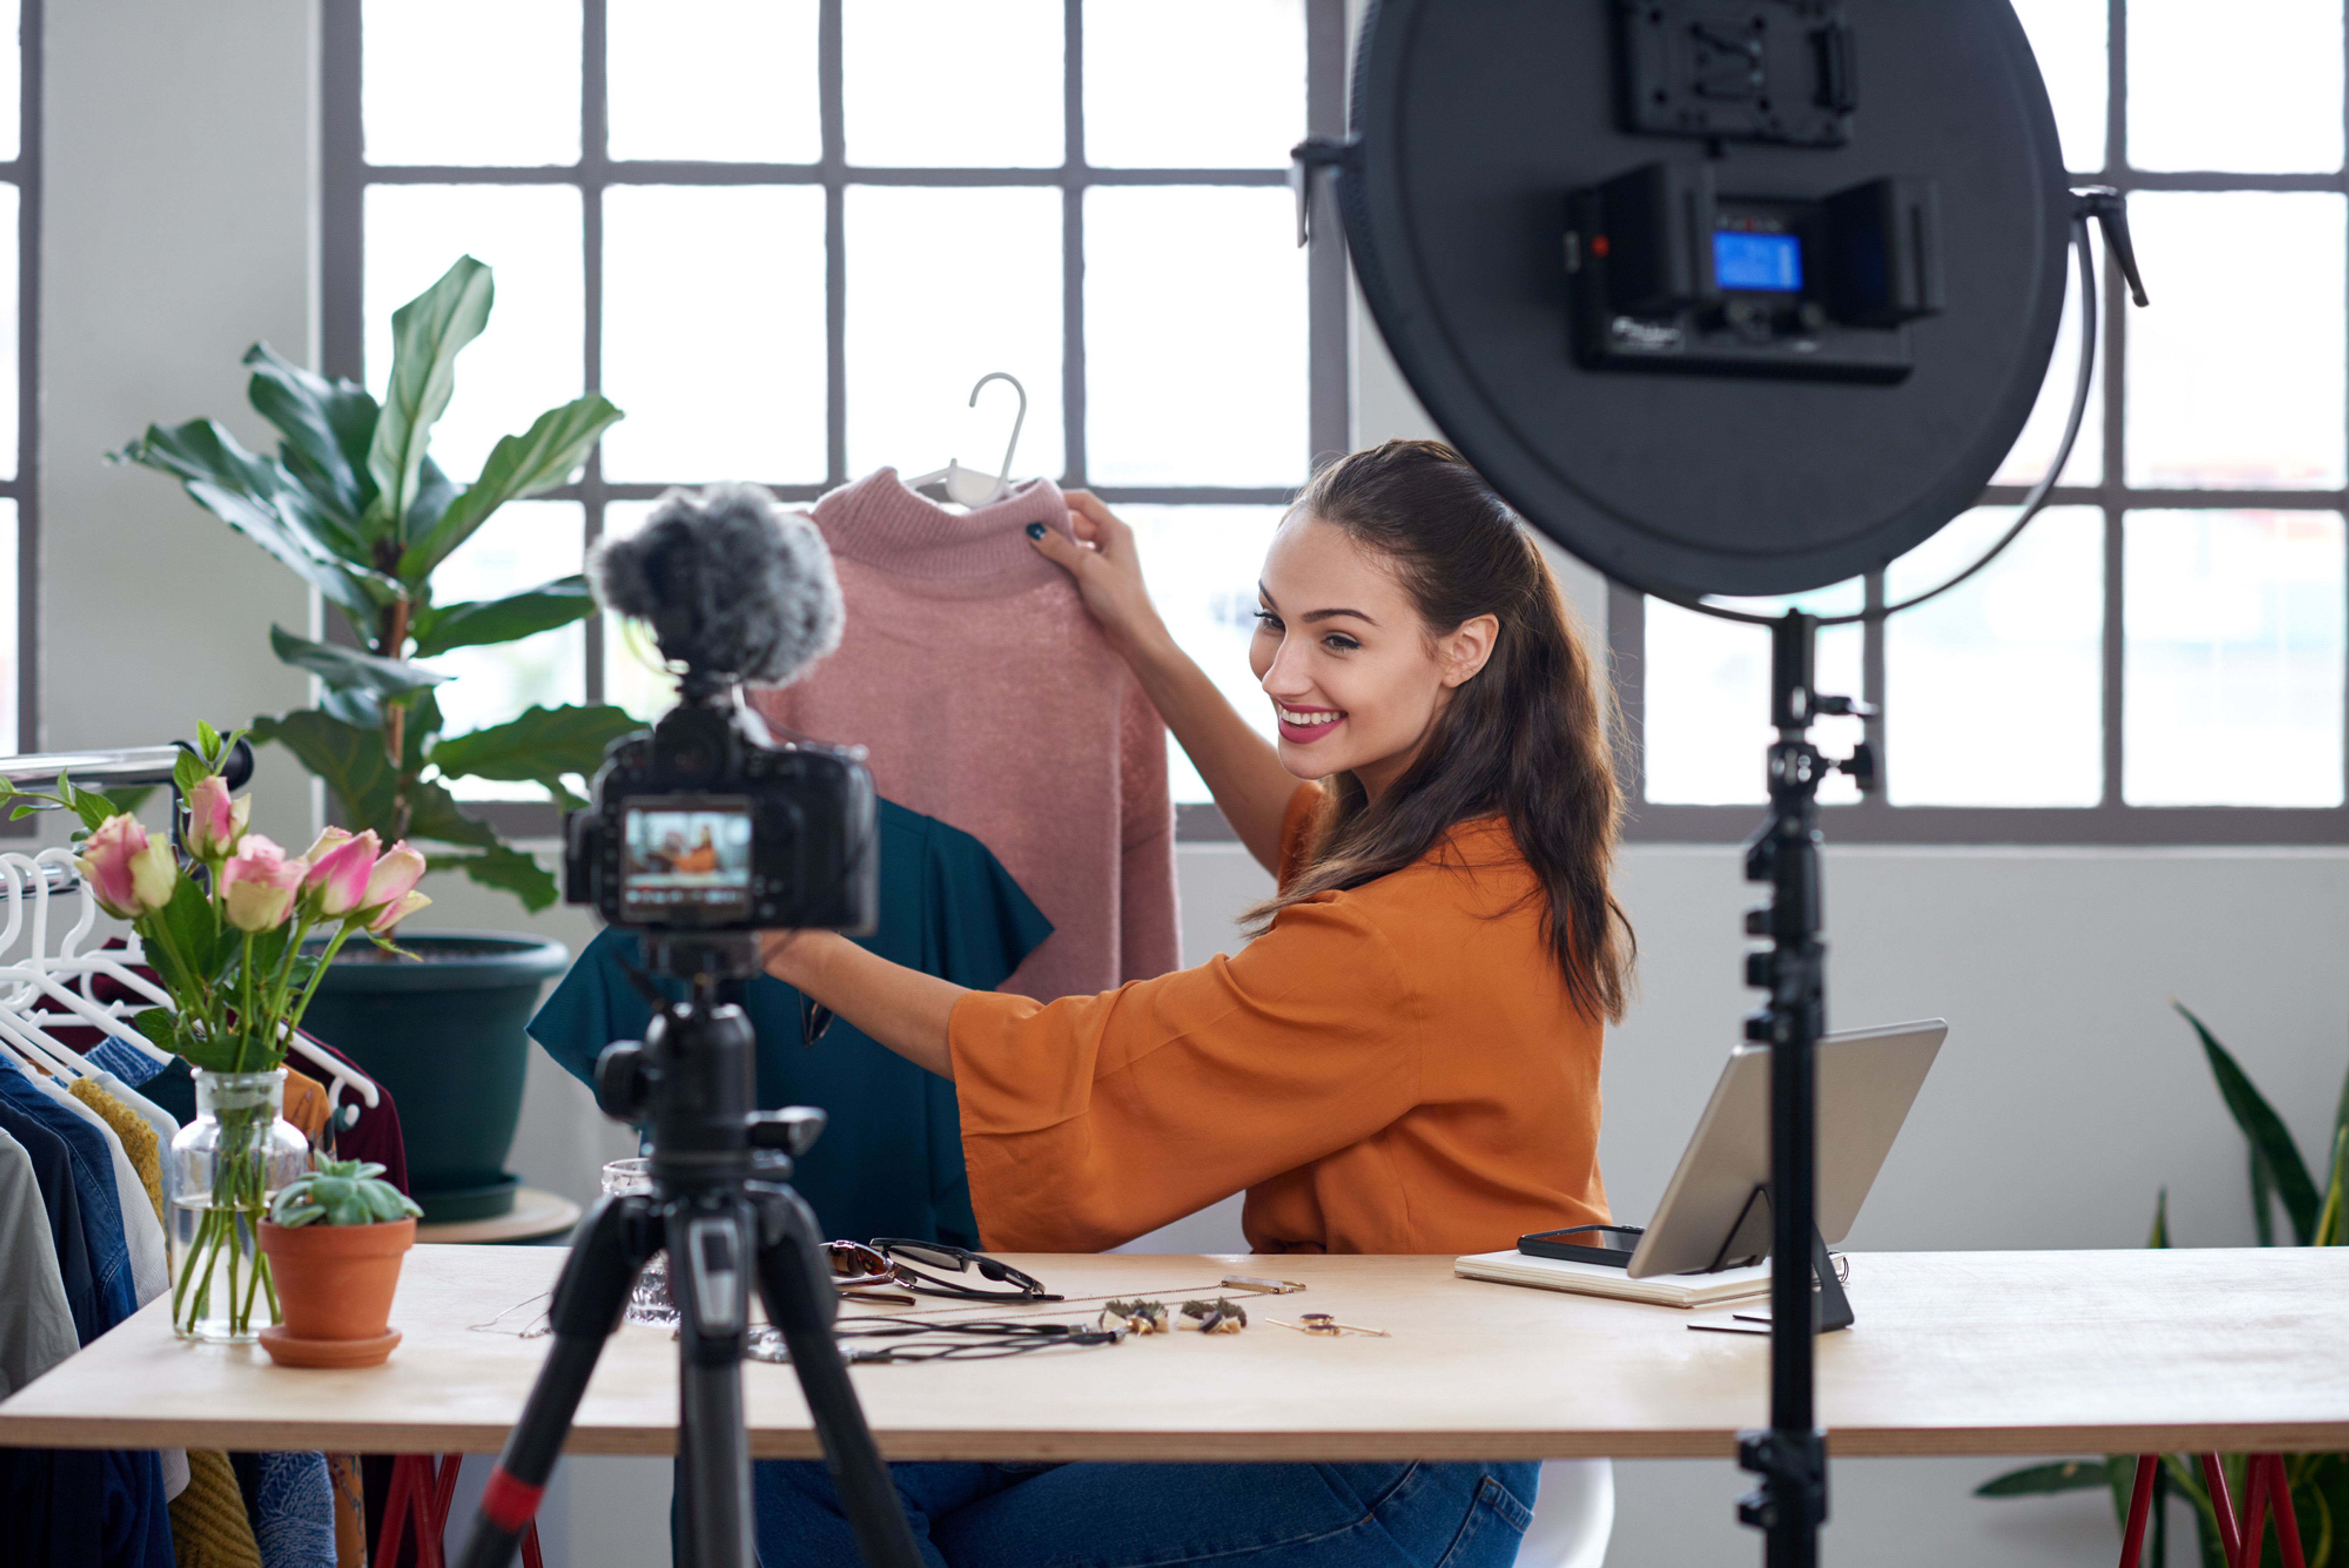 Product Photography for Social Media